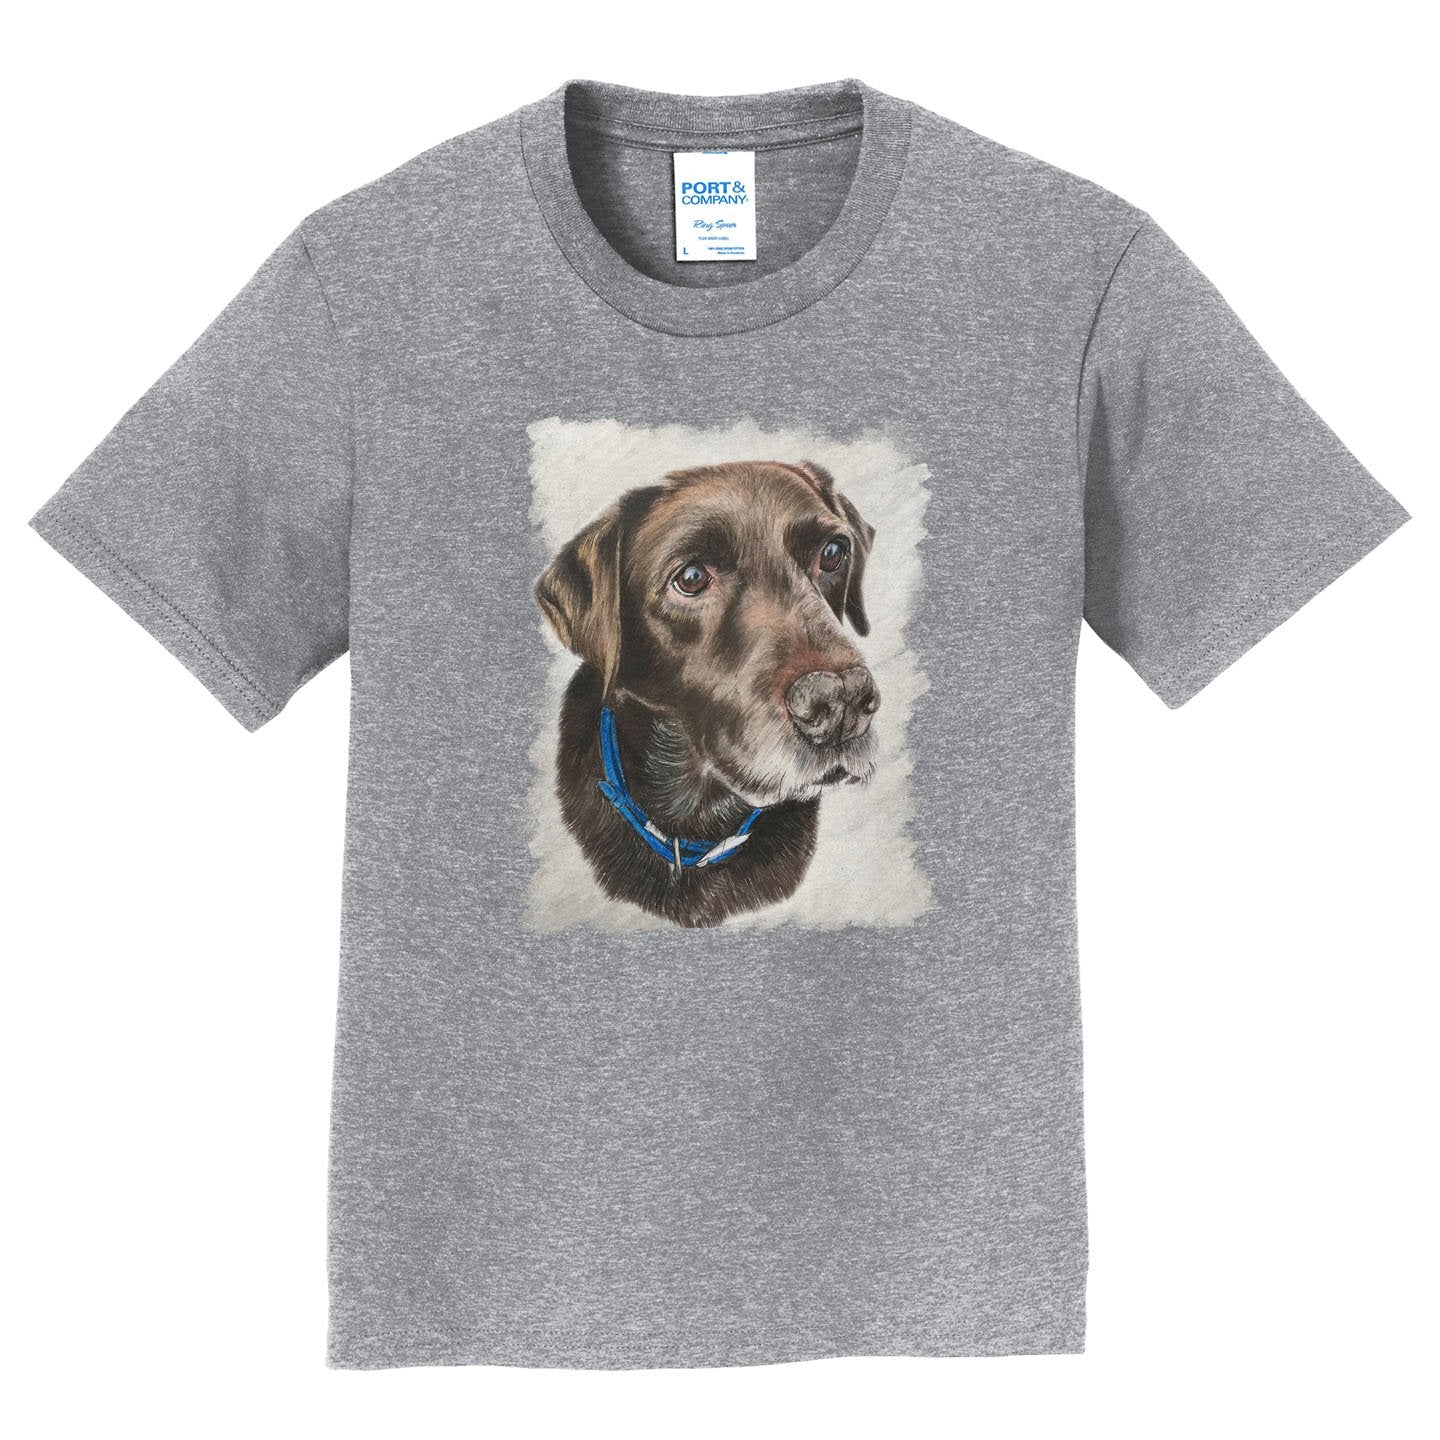 Charlie the Chocolate Lab - Kids' Unisex T-Shirt